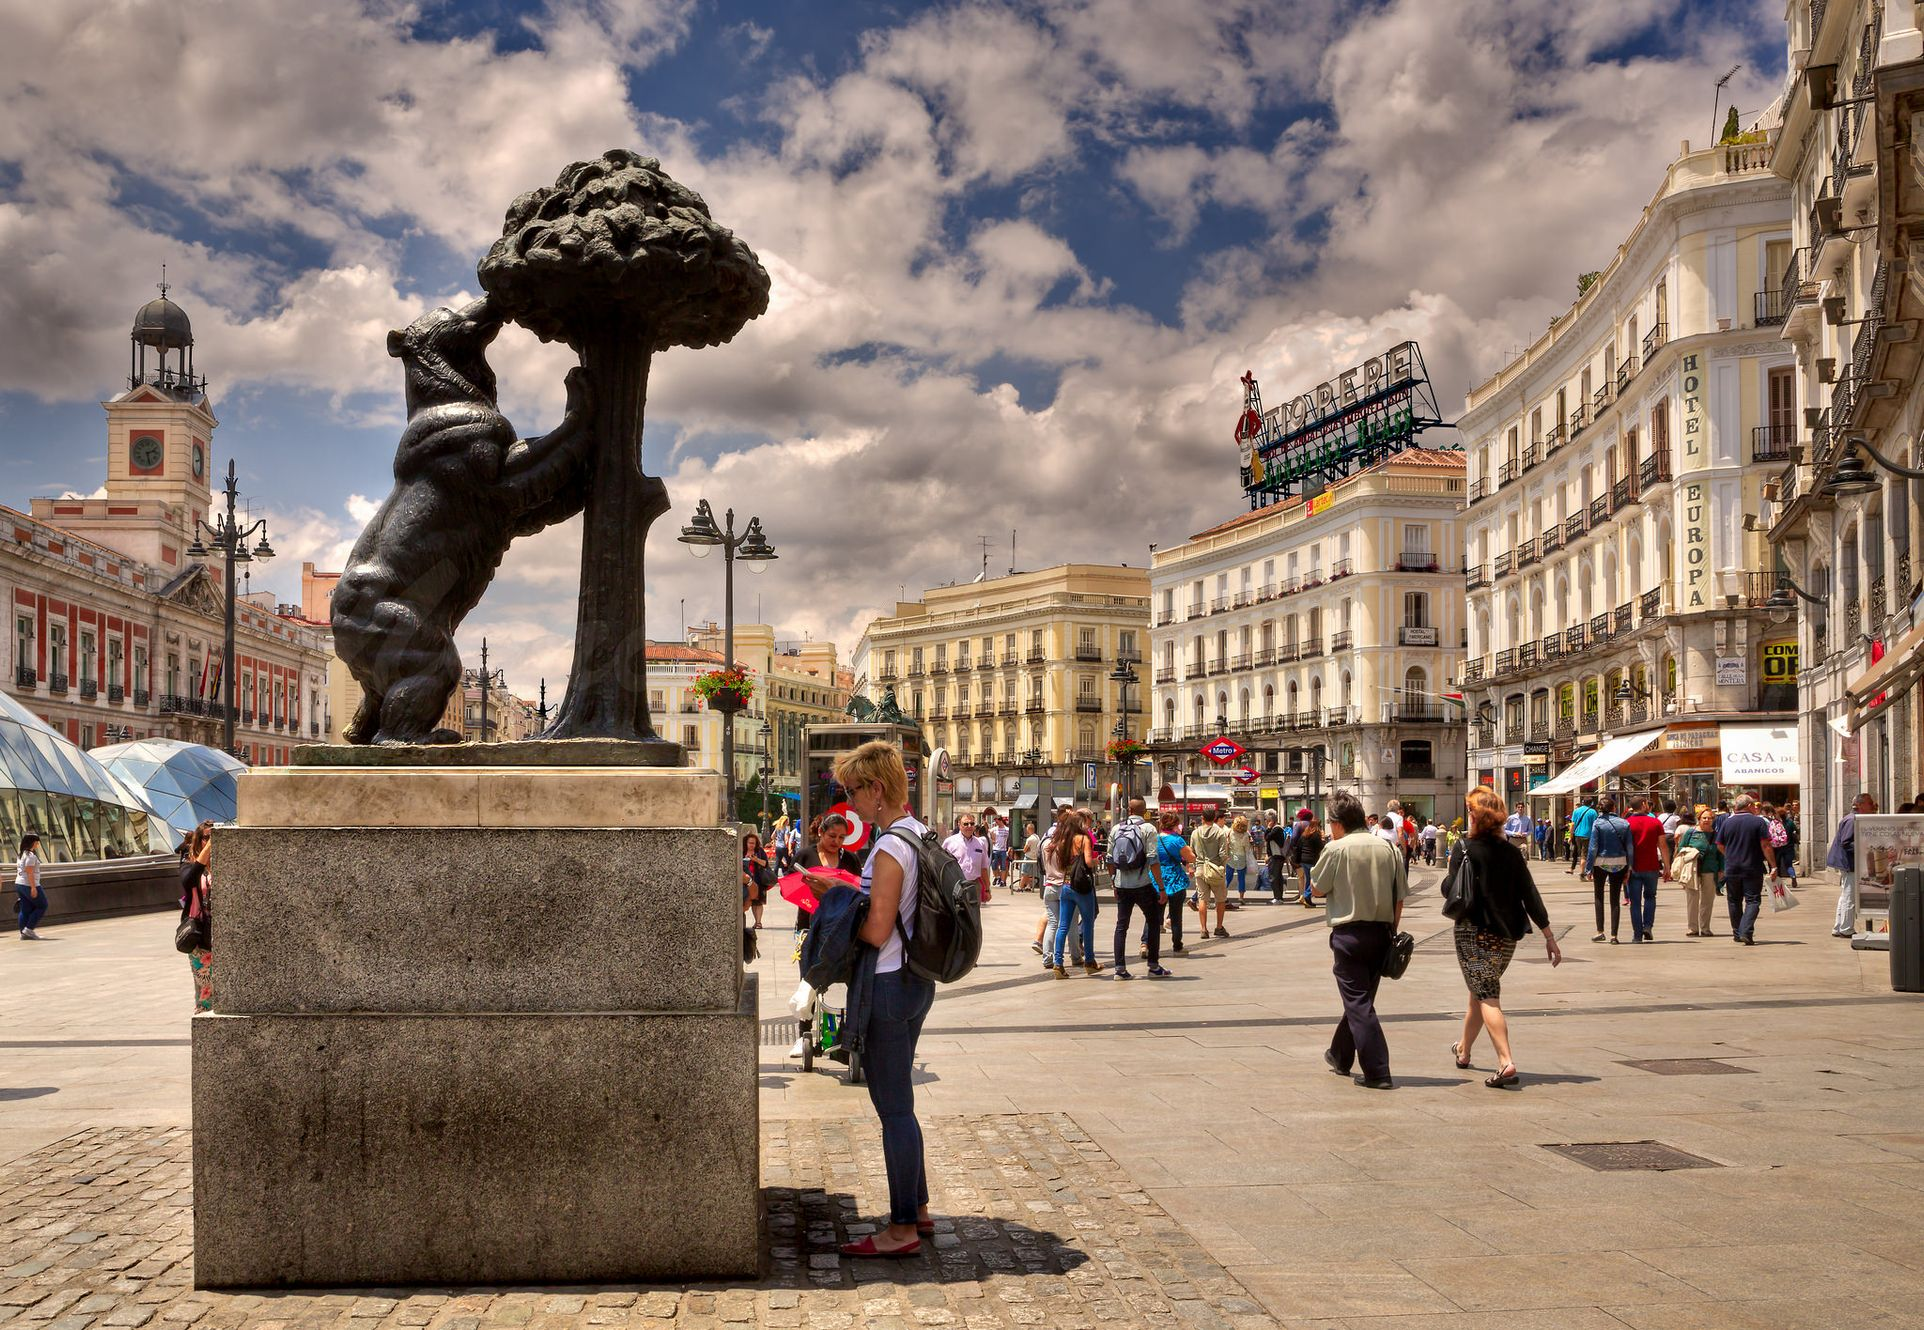 El Oso y El Madroño is one of the Spanish capital's top attractions